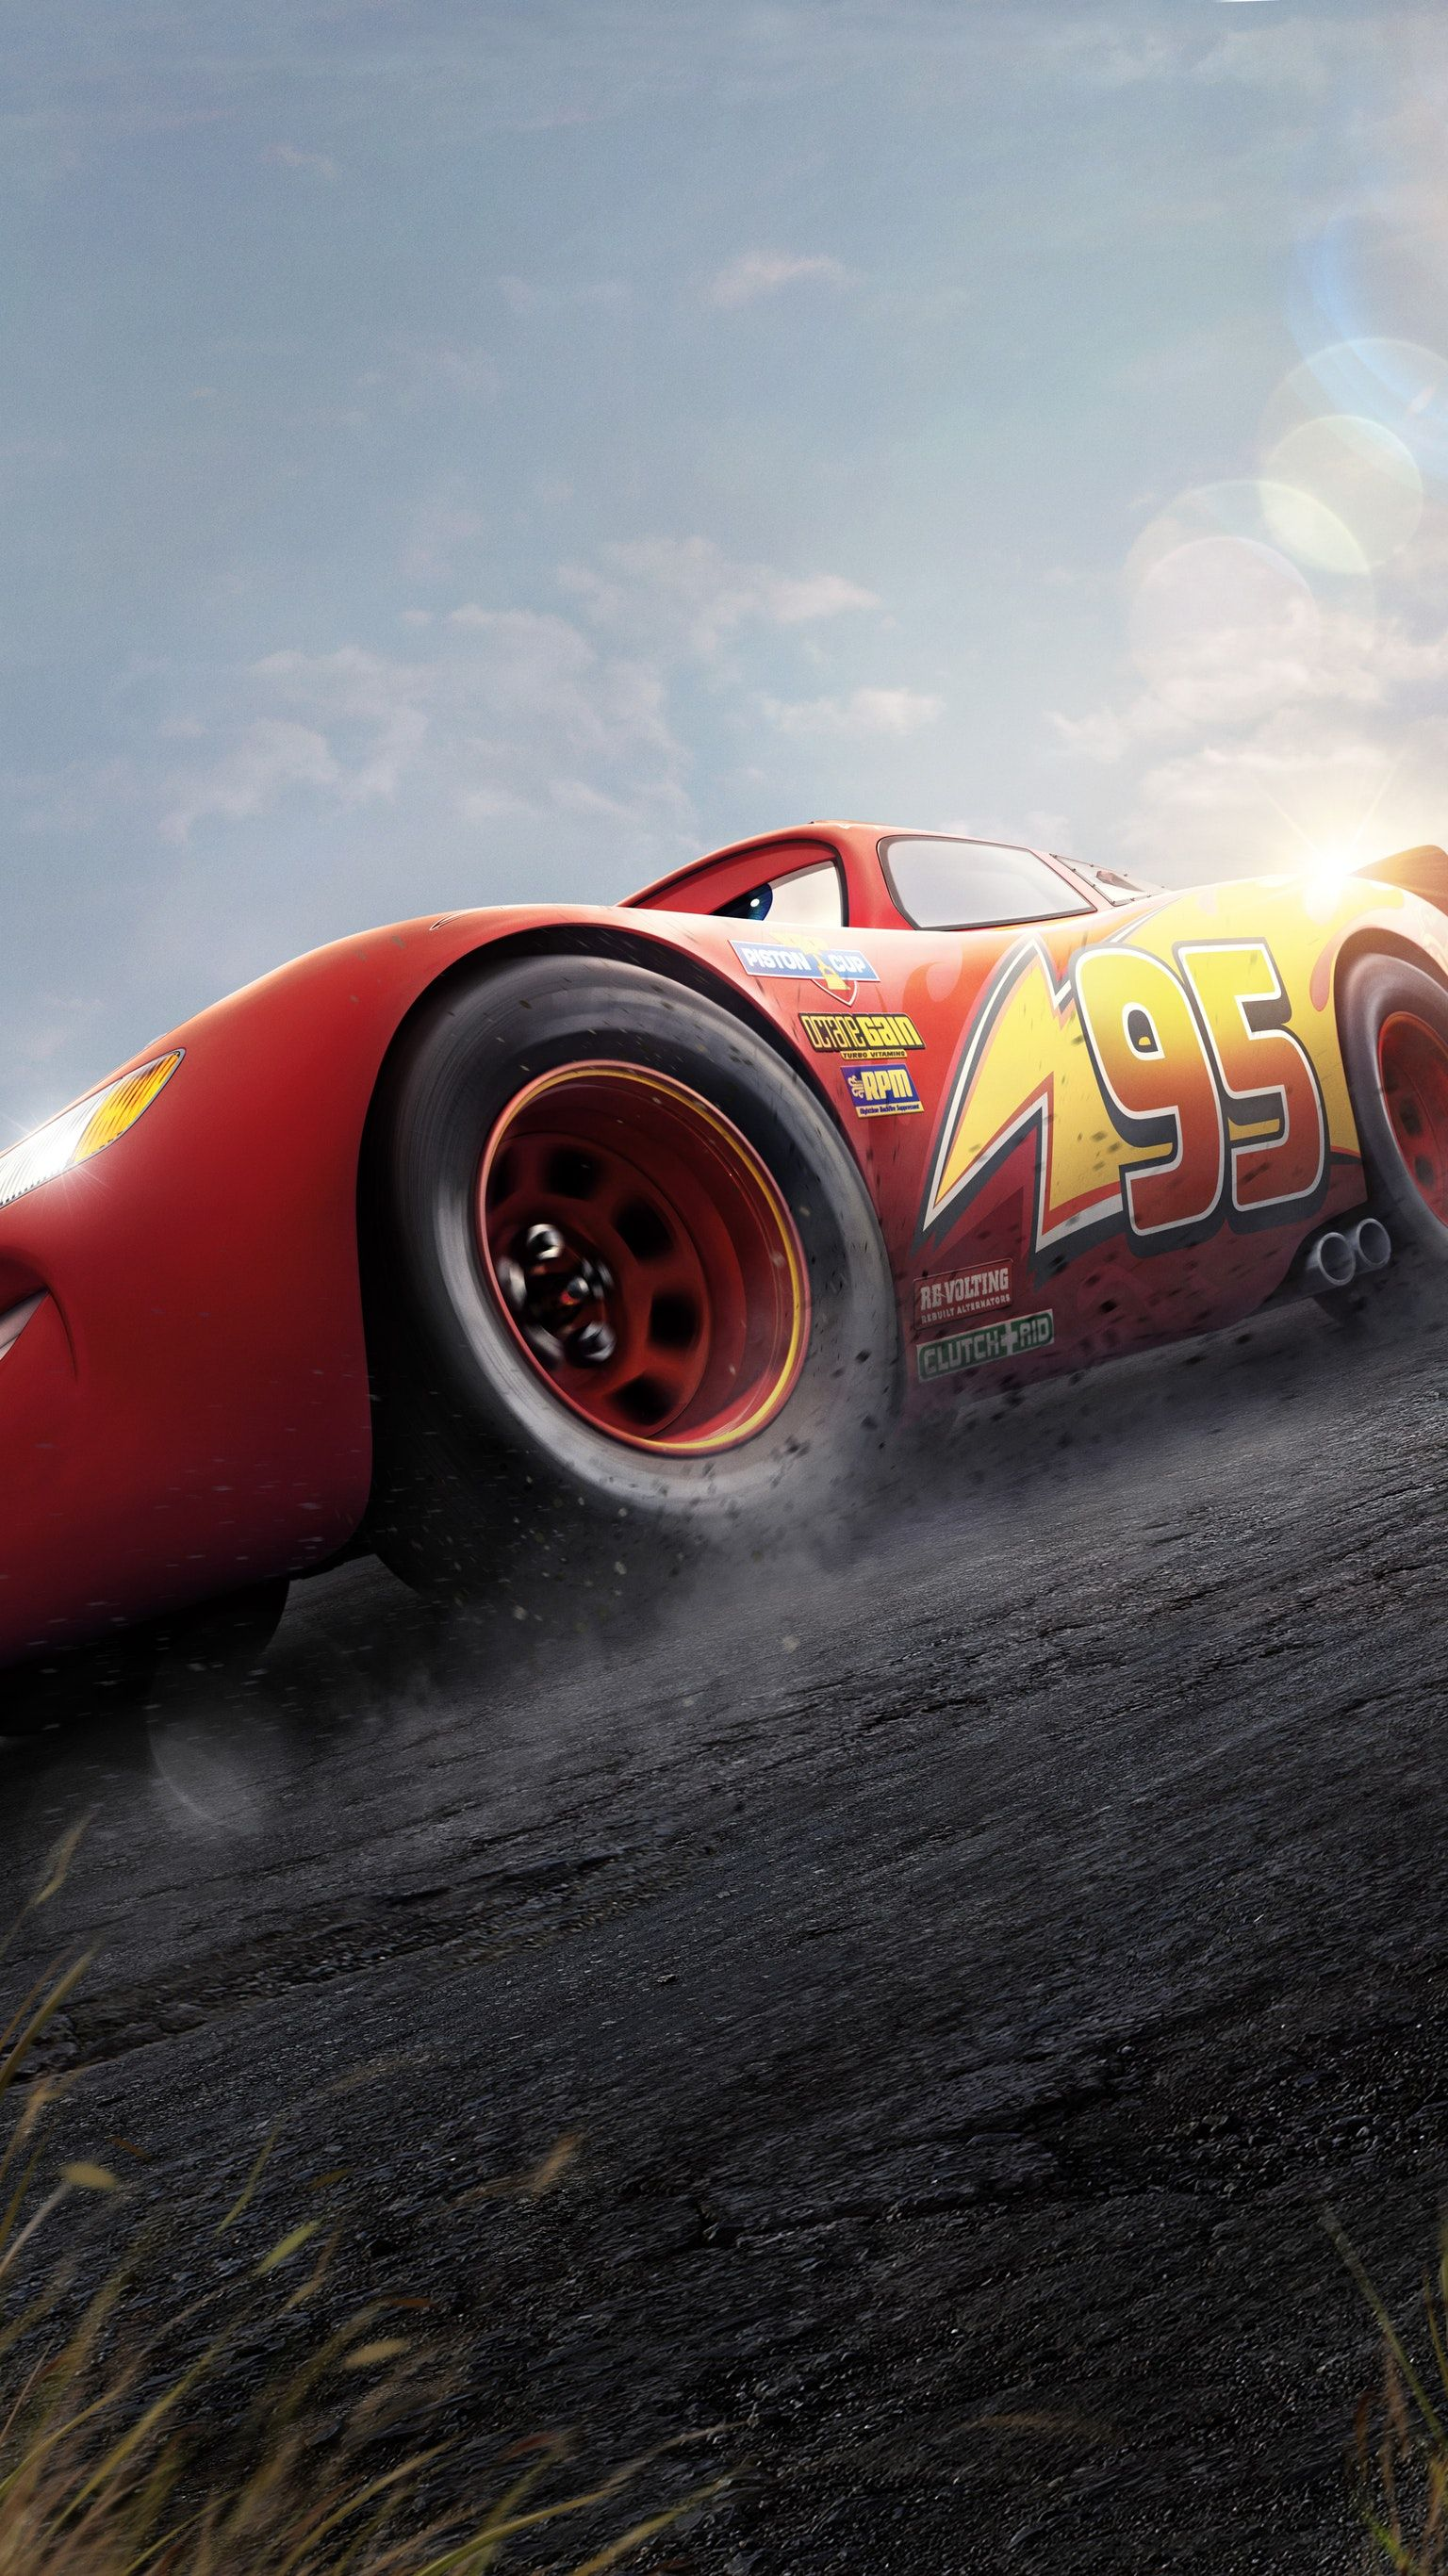 Cars 3 2017 Phone Wallpaper Moviemania Disney Cars Wallpaper Phone Wallpaper Samsung Wallpaper